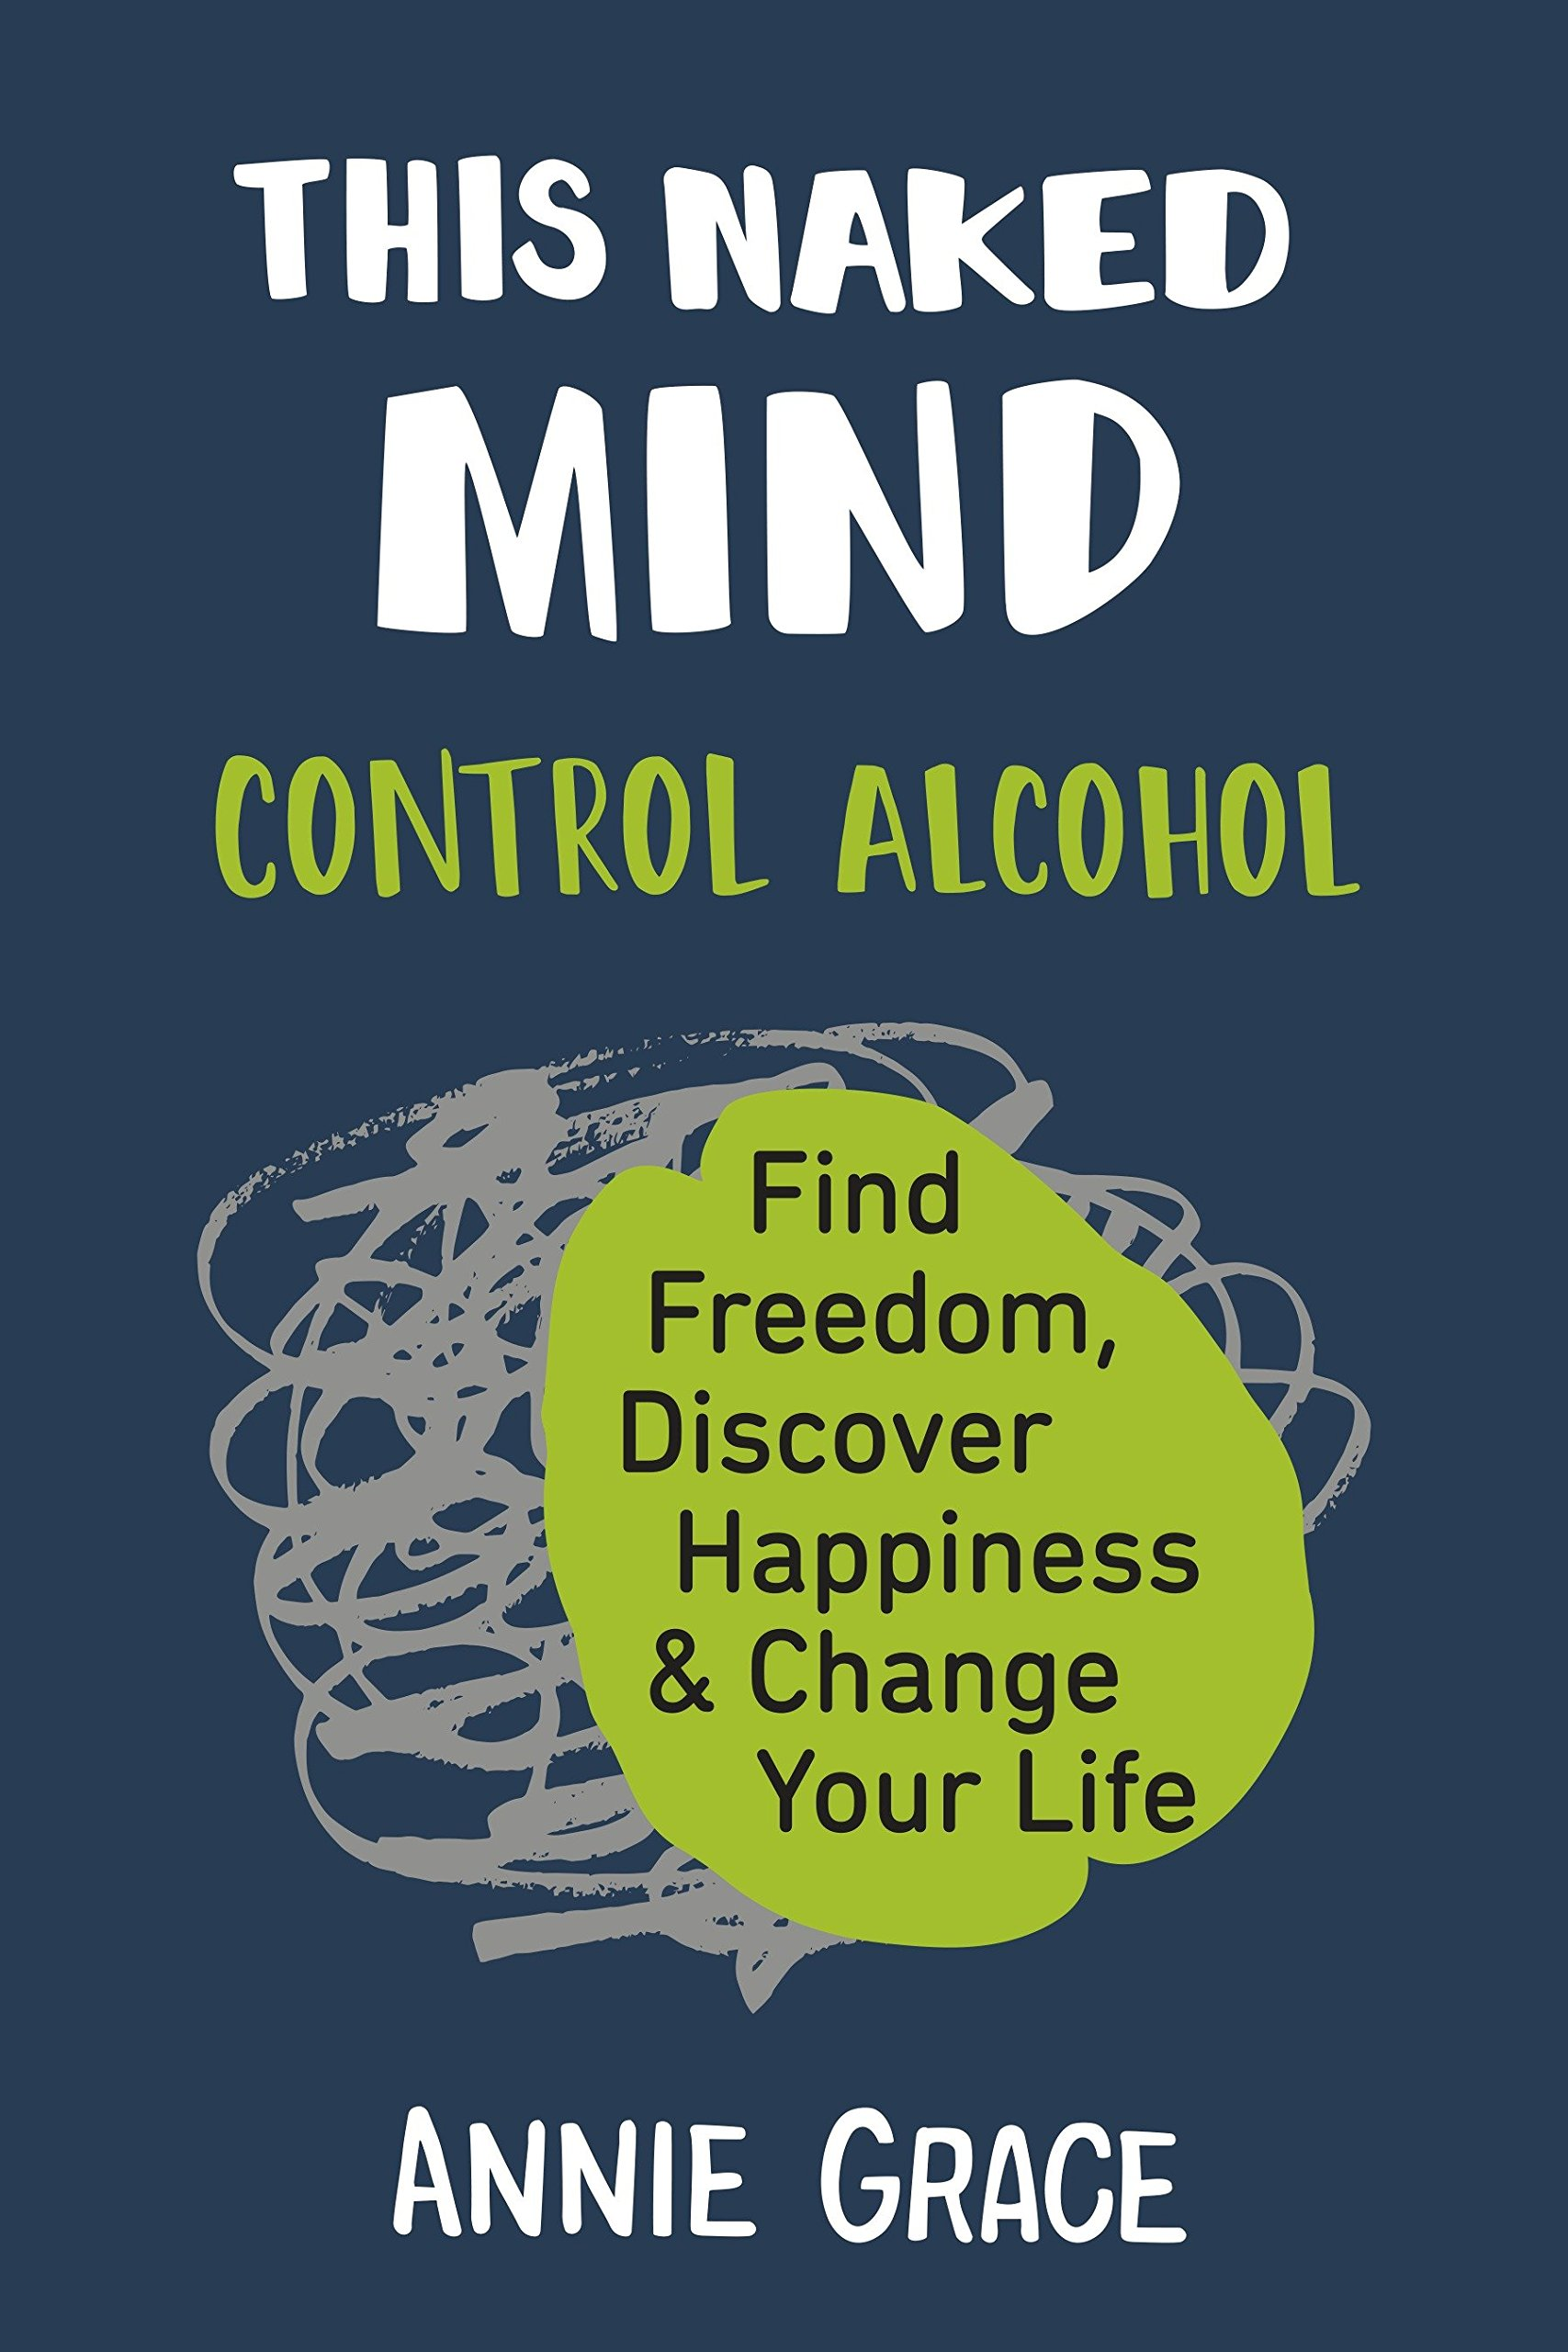 This Naked Mind Control Alcohol, Find Freedom, Discover Happiness & Change Your Life.jpg